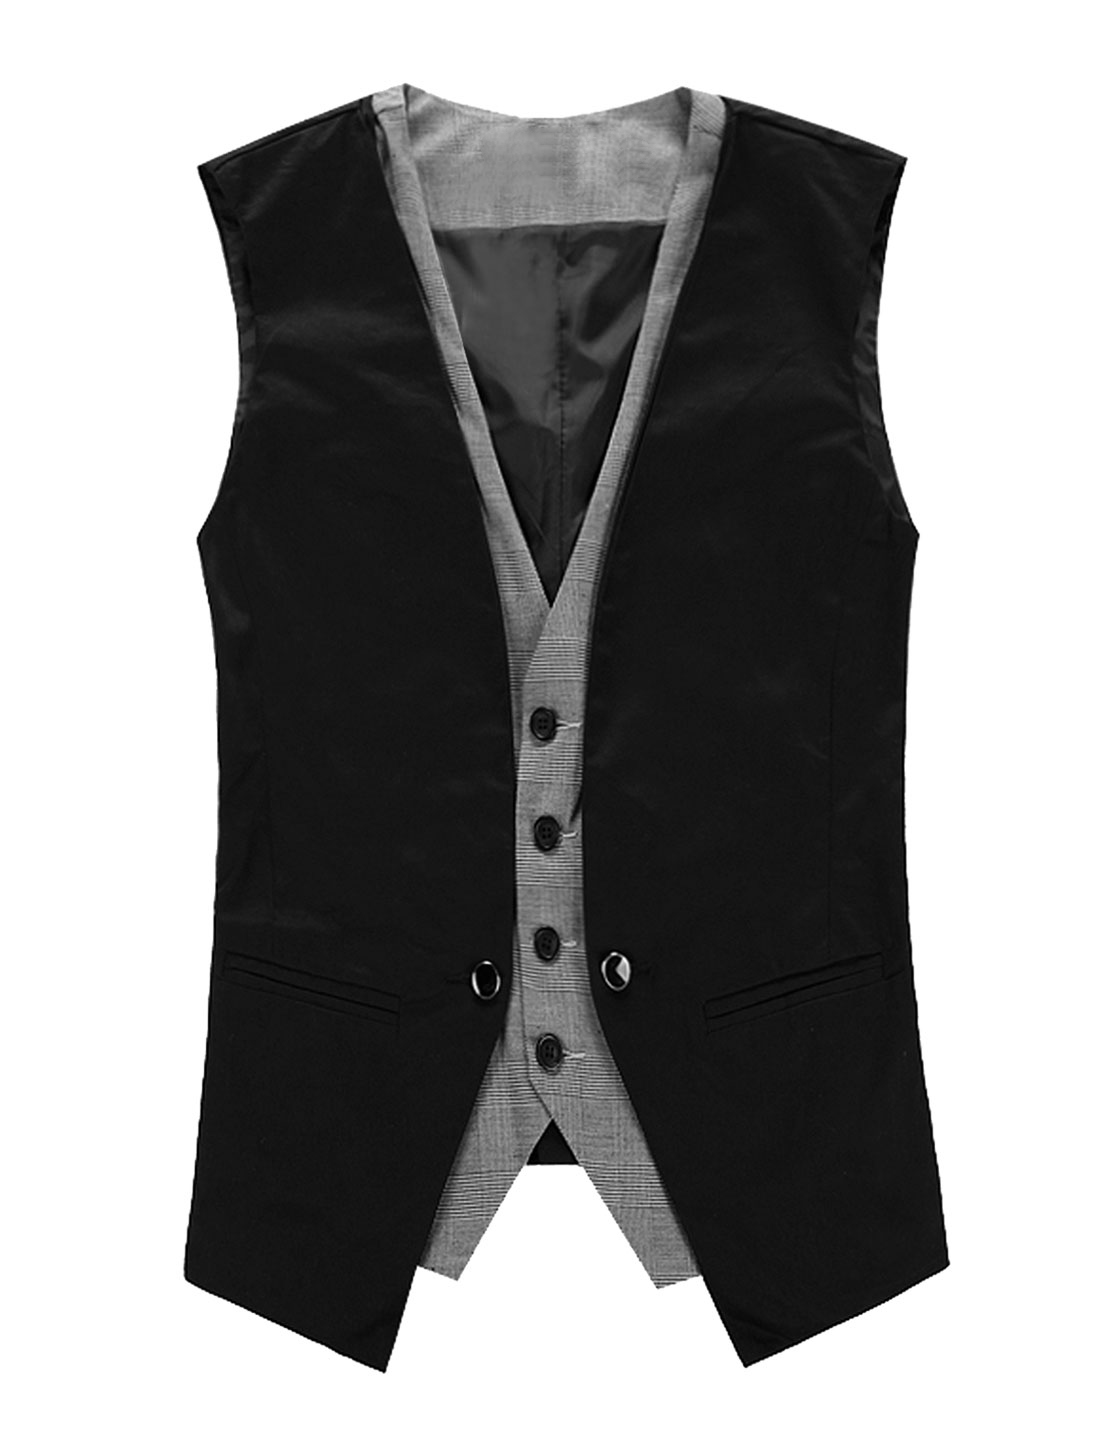 Men V Neck Sleeveless Plaid Button Down Closure Layered Waistcoat Vest Black L